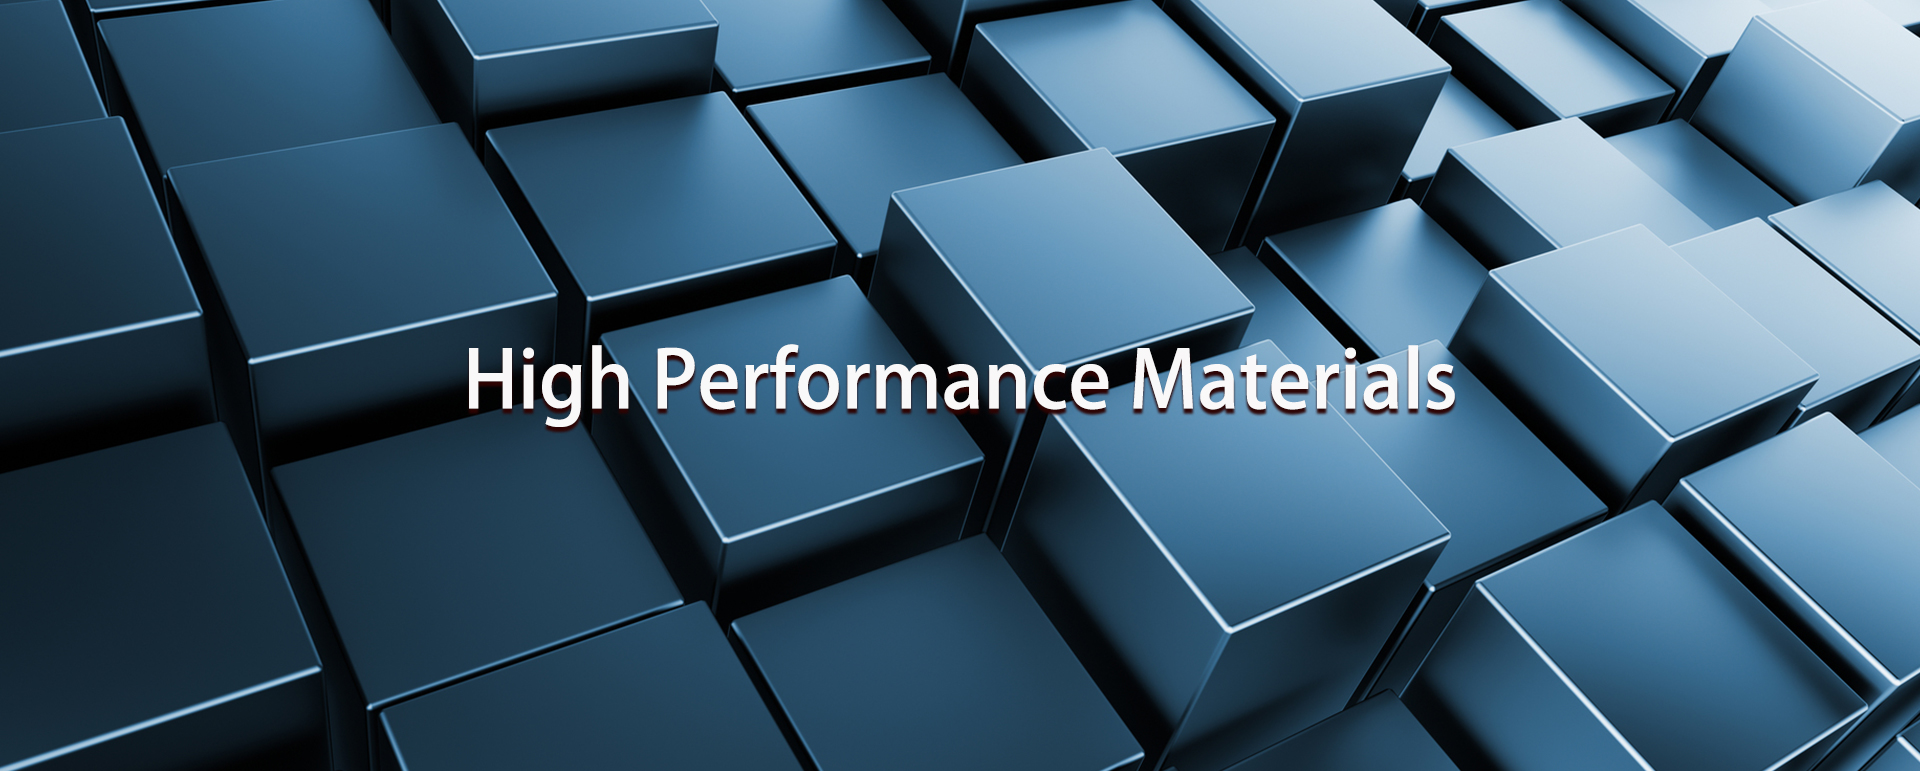 High Performance Materials